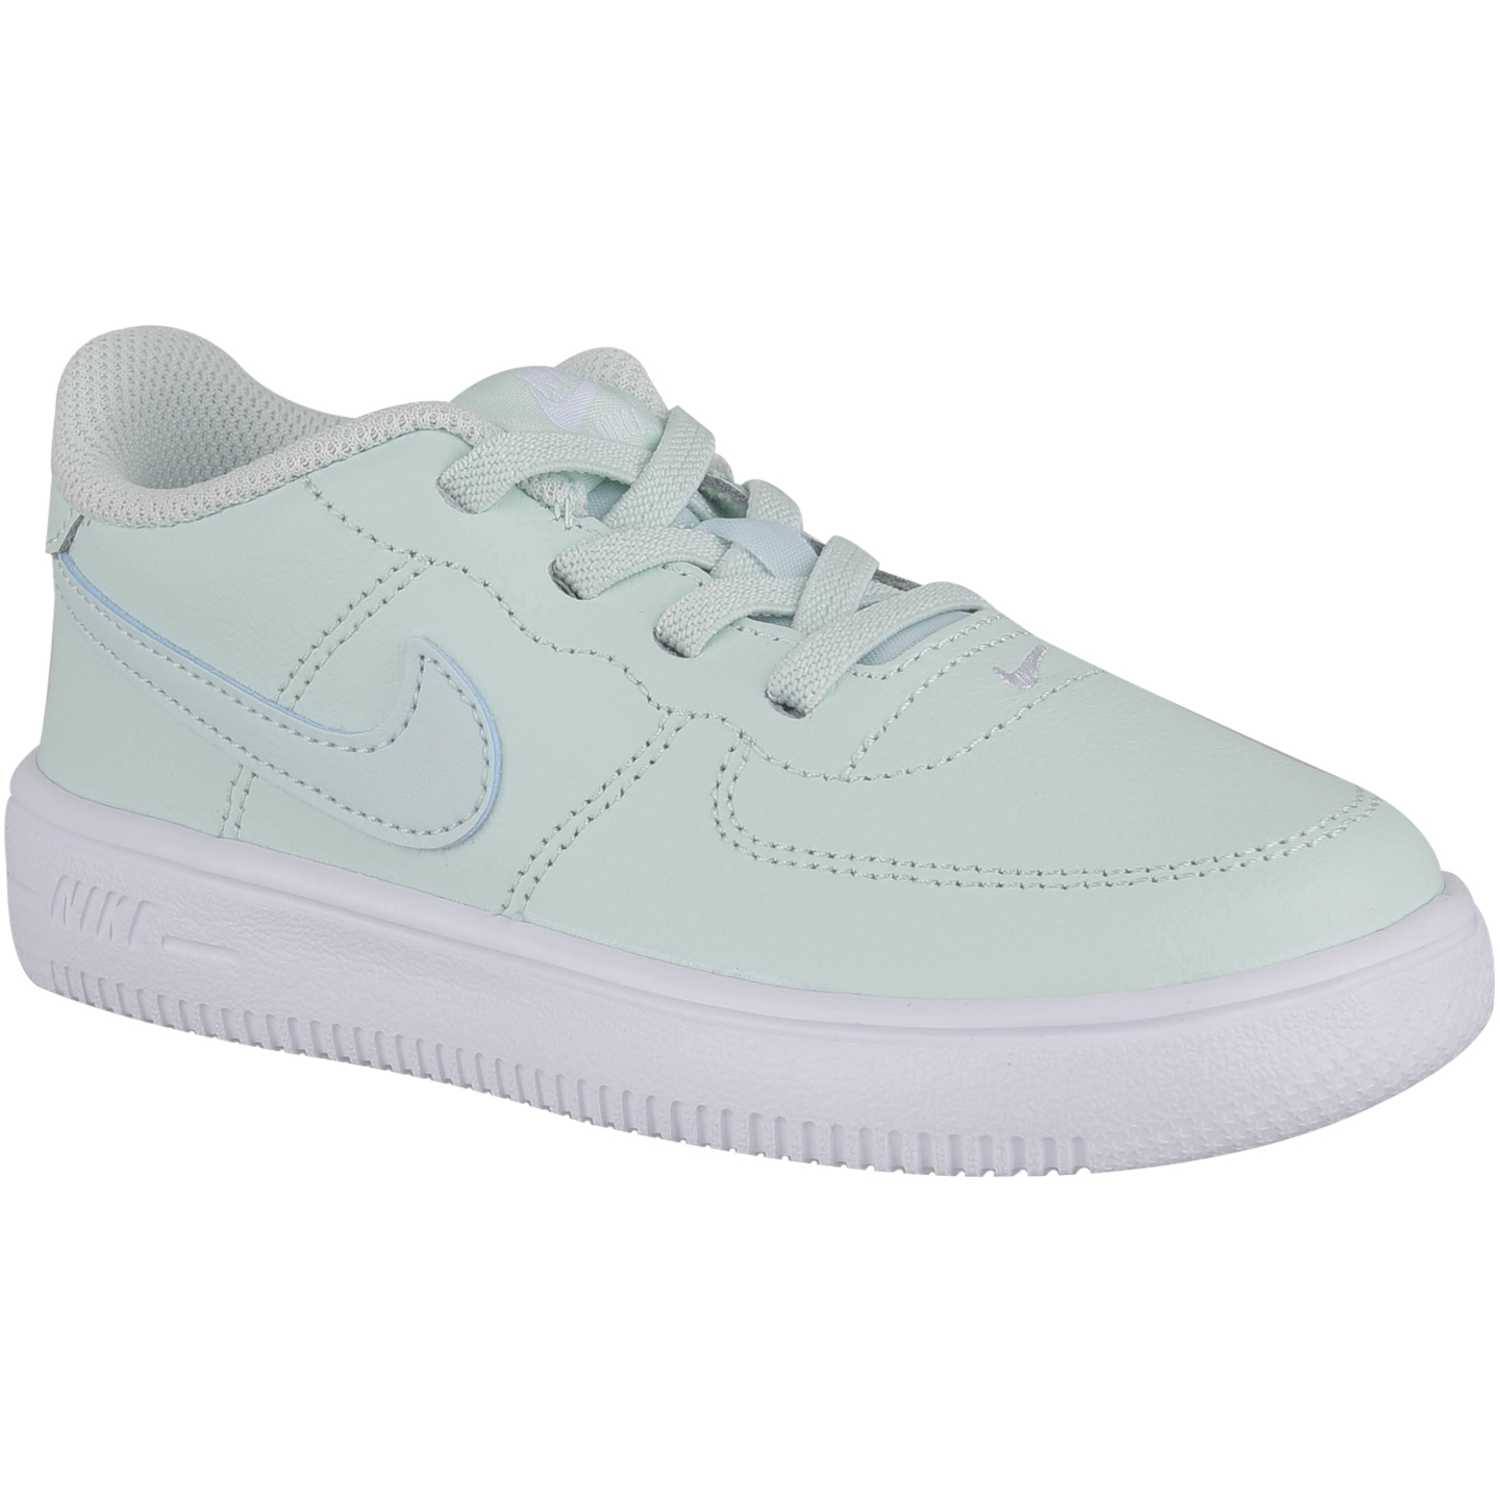 Zapatilla de Niño Nike Menta force 1 18 bt